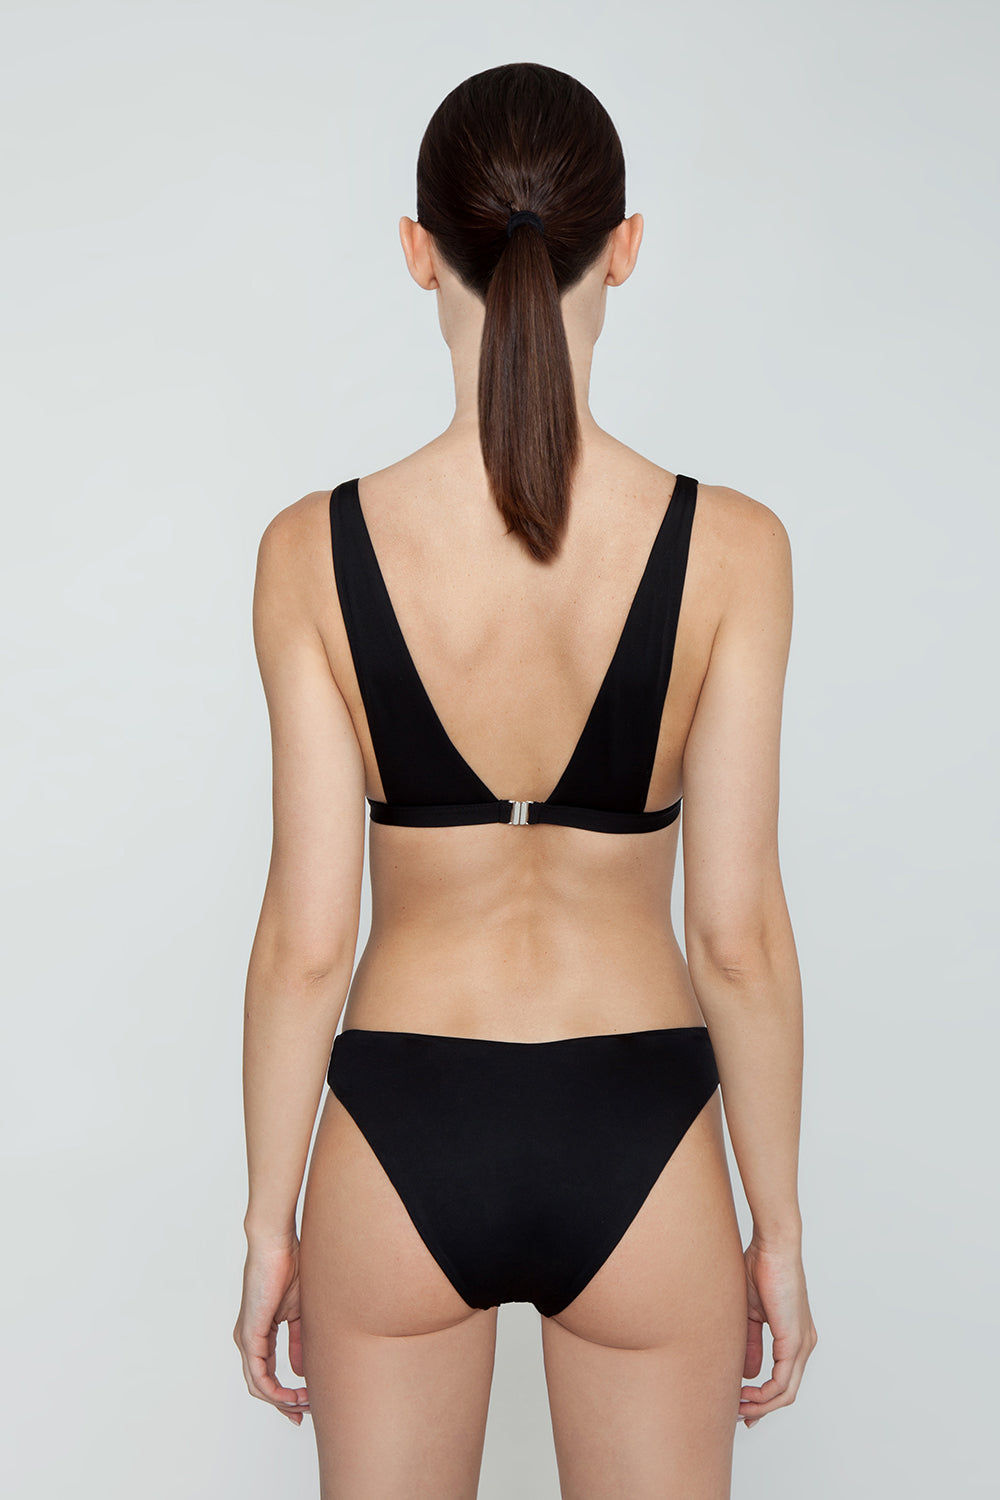 MONICA HANSEN BEACHWEAR Babe Watch Long Triangle Bikini Top - Black Bikini Top | Black| Monica Hansen Babe Watch Long Triangle Bikini Top - Black. Plunging U-neckline Long triangle top Small nickel colored metal clasp in back Double fabric on the inside instead of lining Italian fabric 85% Nylon 15% Elastane Manufactured in Italy Hand wash cold.  Dry Flat Back View